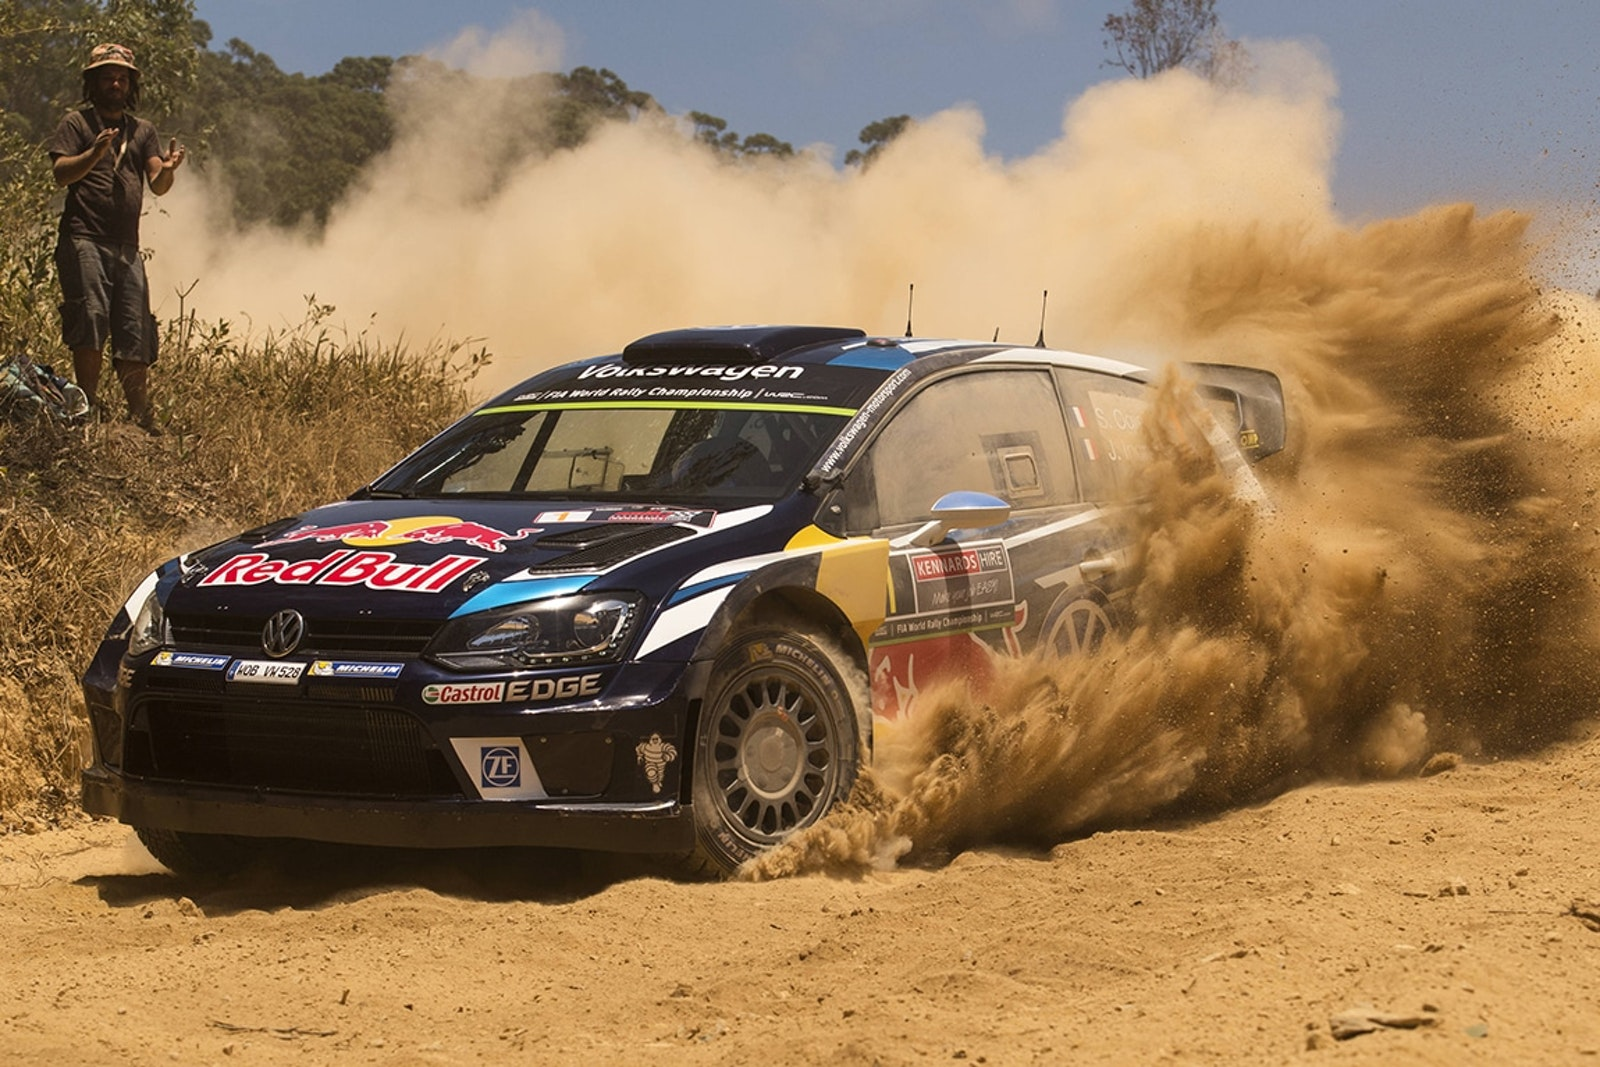 Sebastien Ogier (FRA) performs during the FIA World Rally Championship Australia 2016 in Coffs Harbour on November 19, 2016 // Jaanus Ree/Red Bull Content Pool // P-20161120-00482 // Usage for editorial use only // Please go to www.redbullcontentpool.com for further information. //